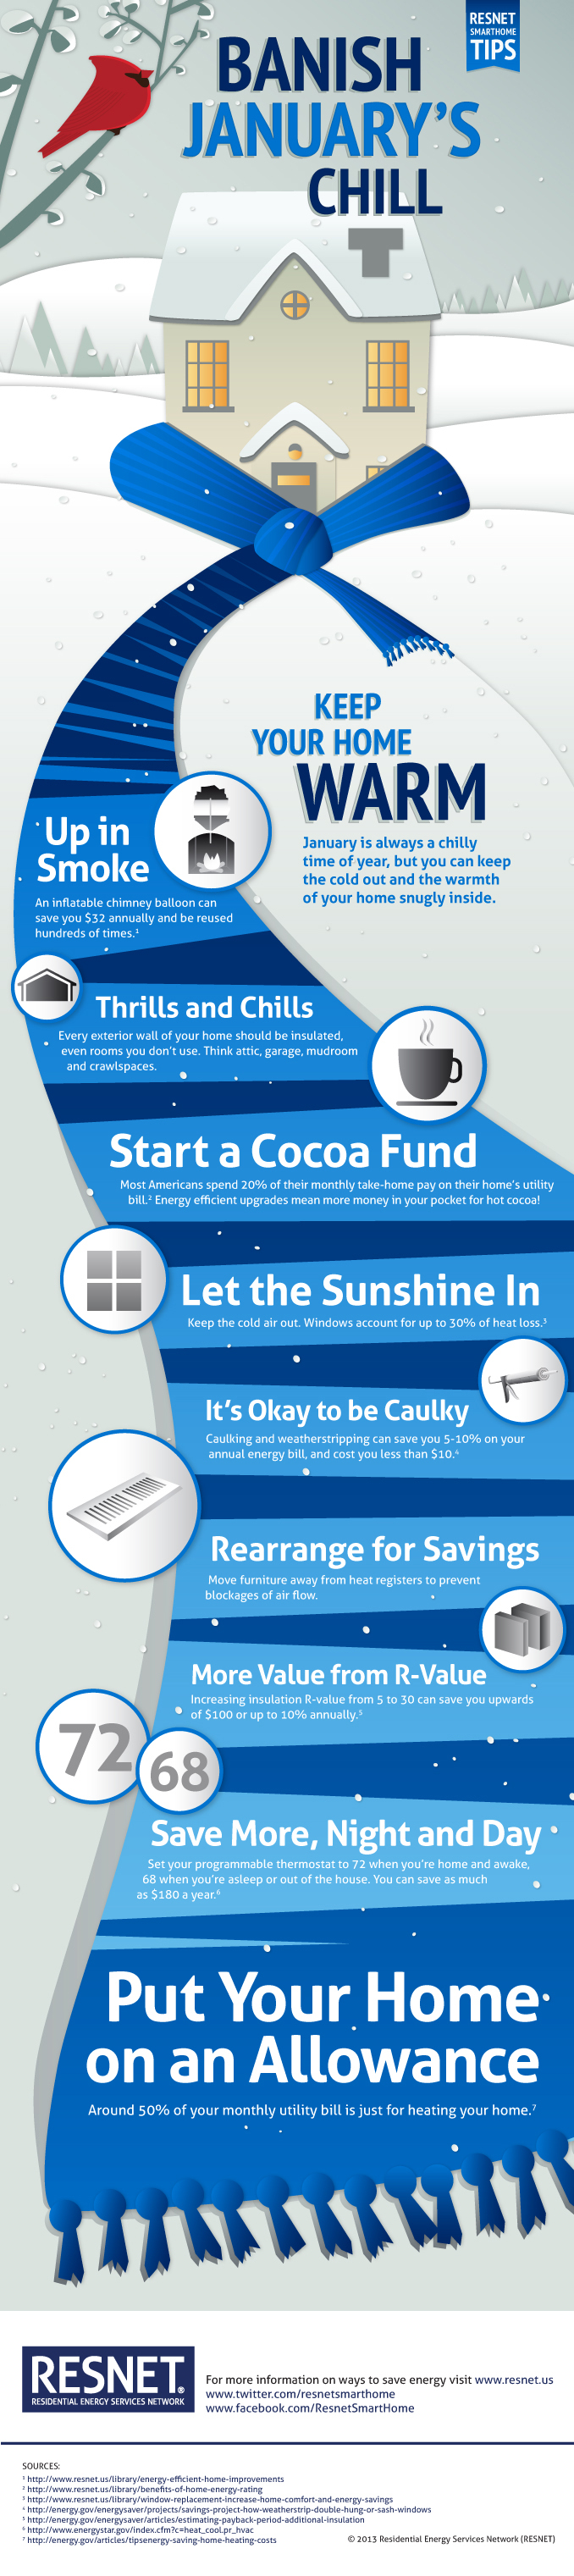 This infographic offers great tips on what you can do to keep your home warm in winter.